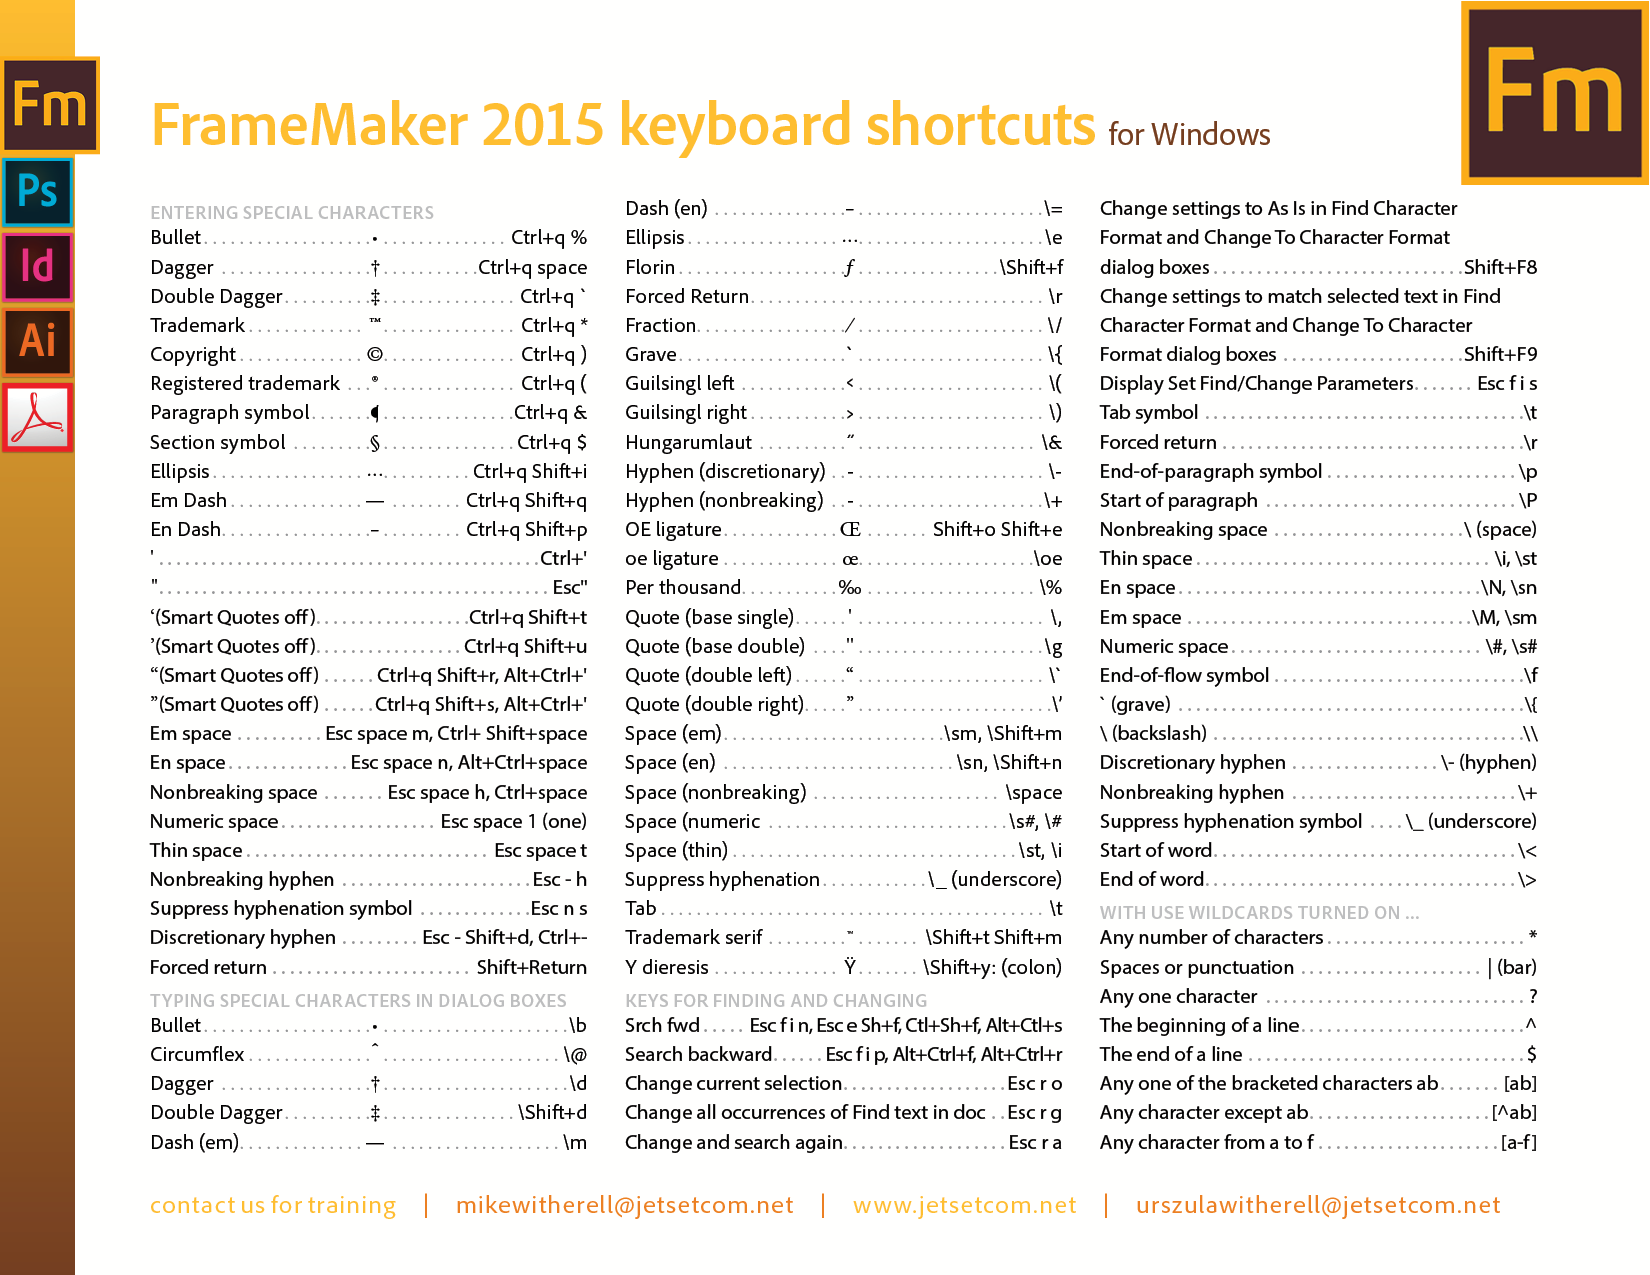 FrameMaker 2015 keyboard shortcuts for Windows